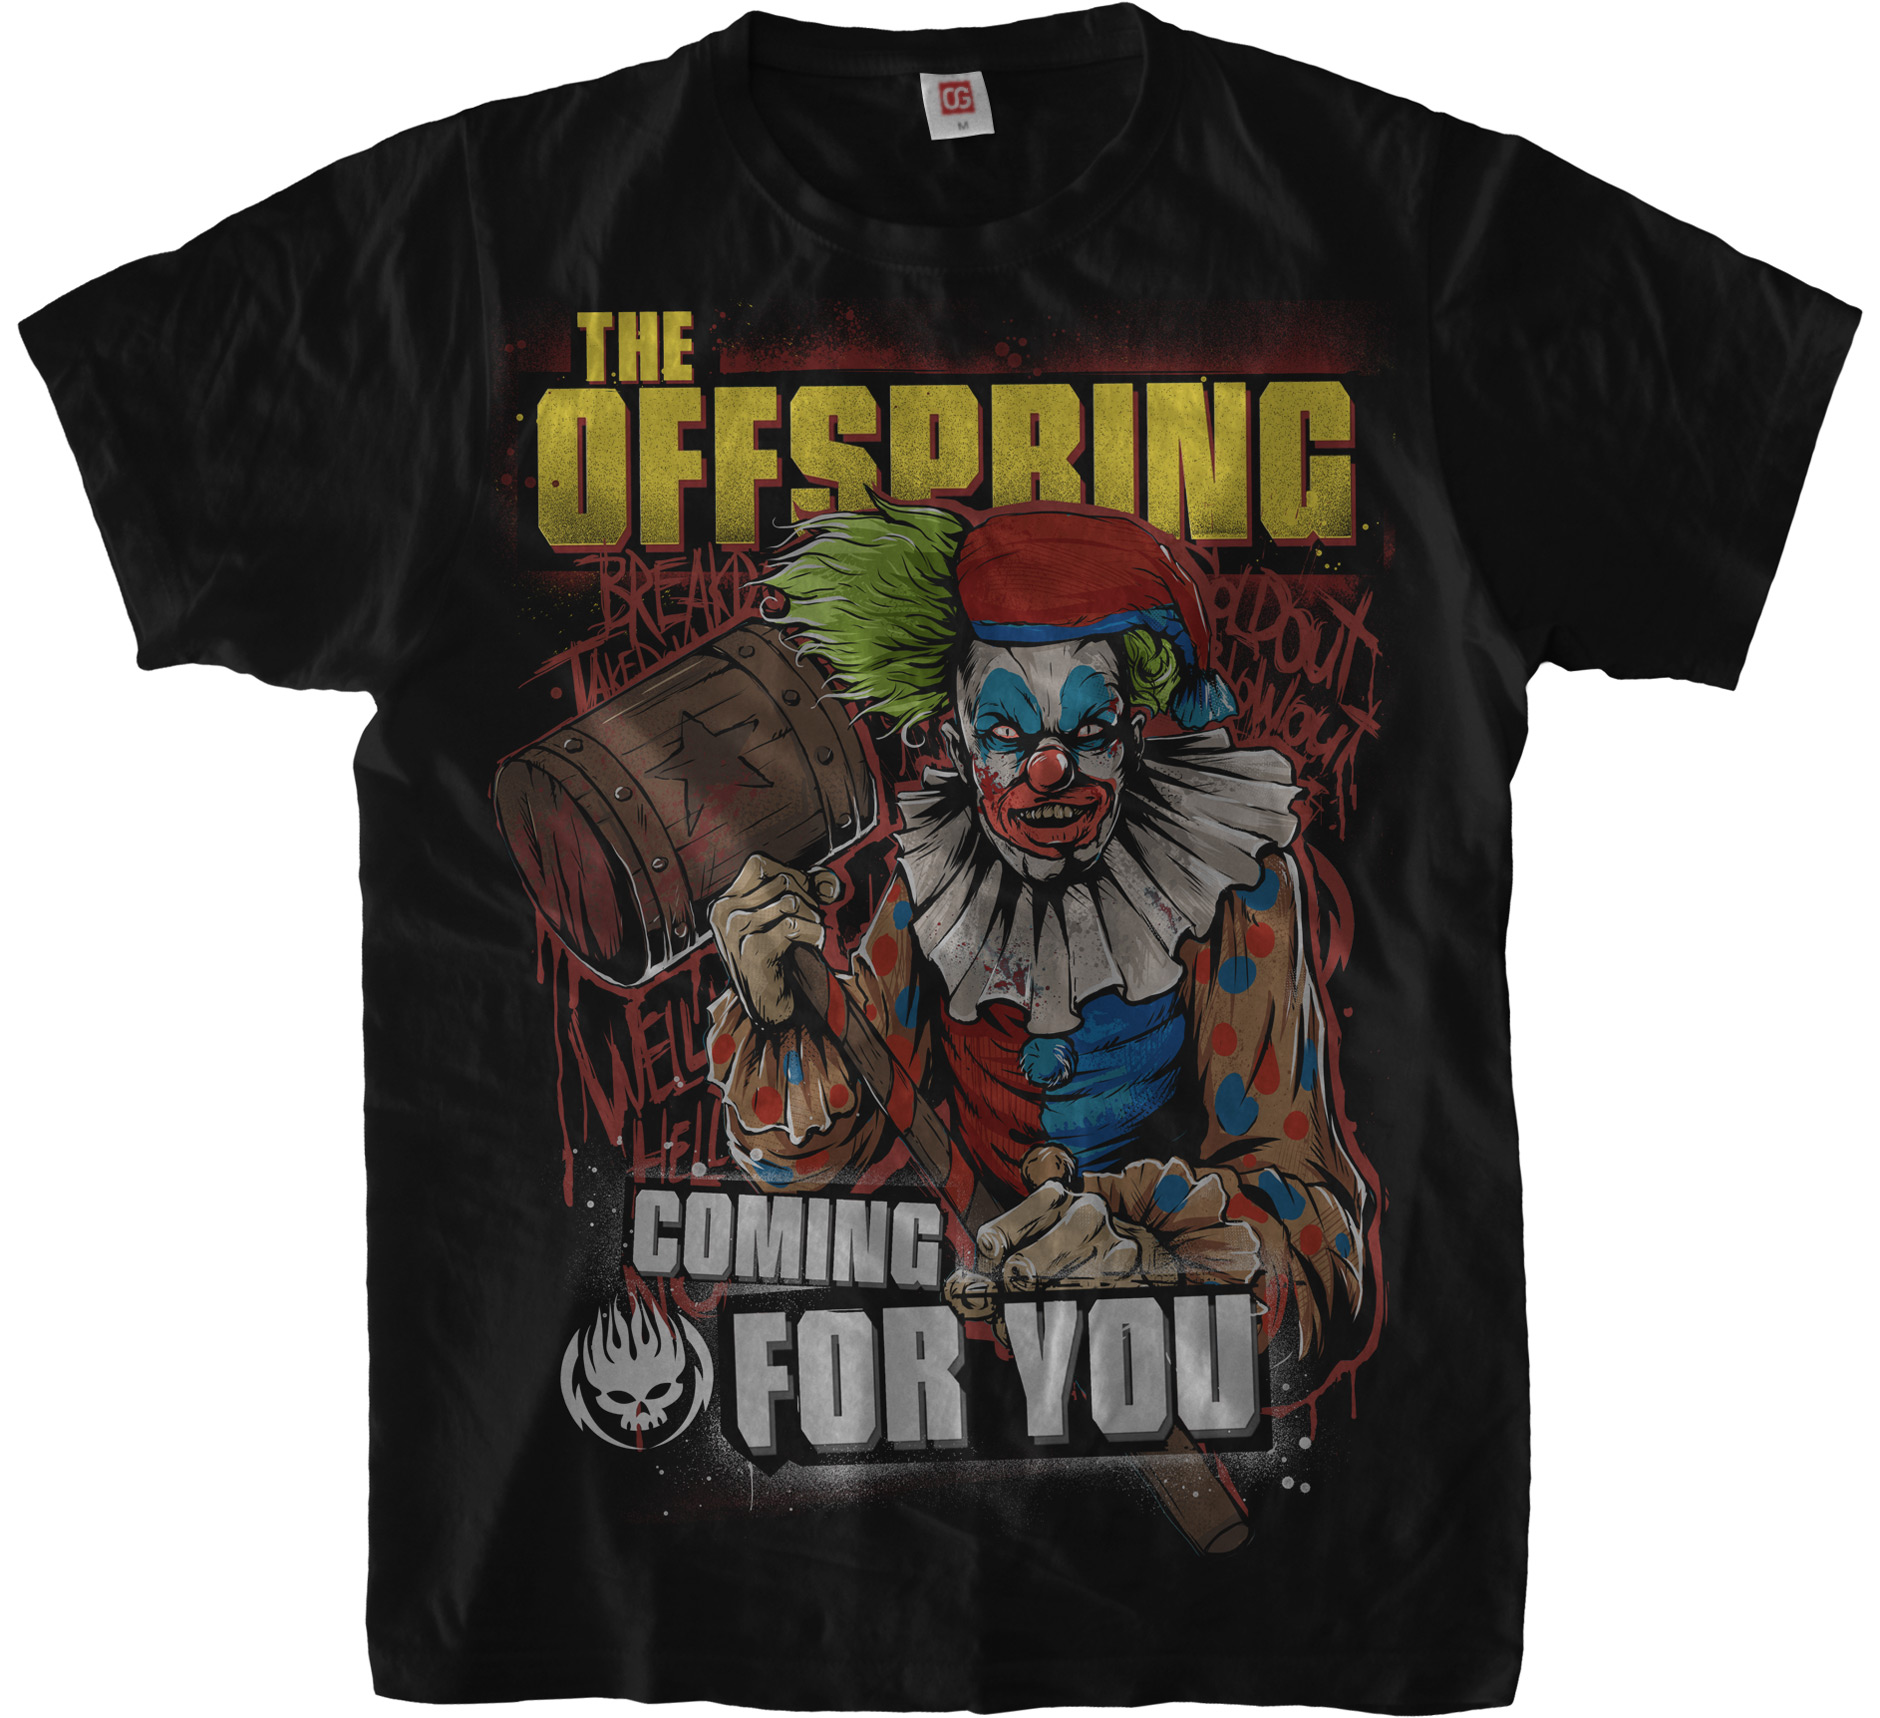 Black «Coming for you» T-Shirt for The Offspring